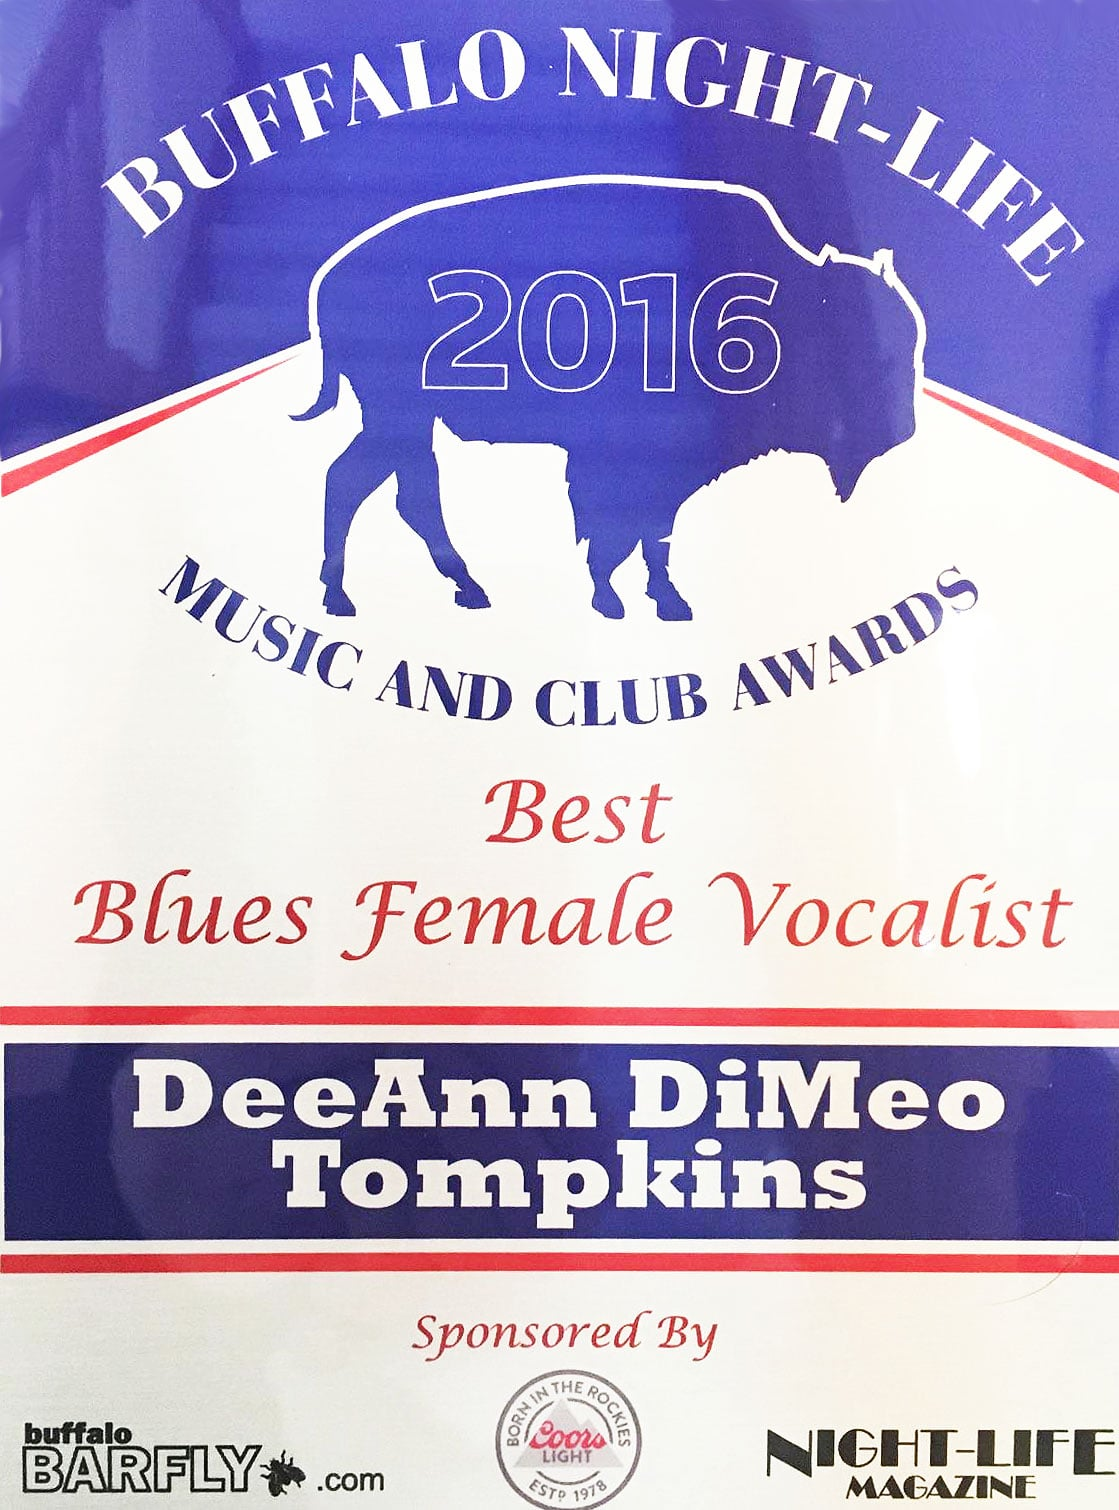 Best Blues Female Vocalist Night Life Magazine